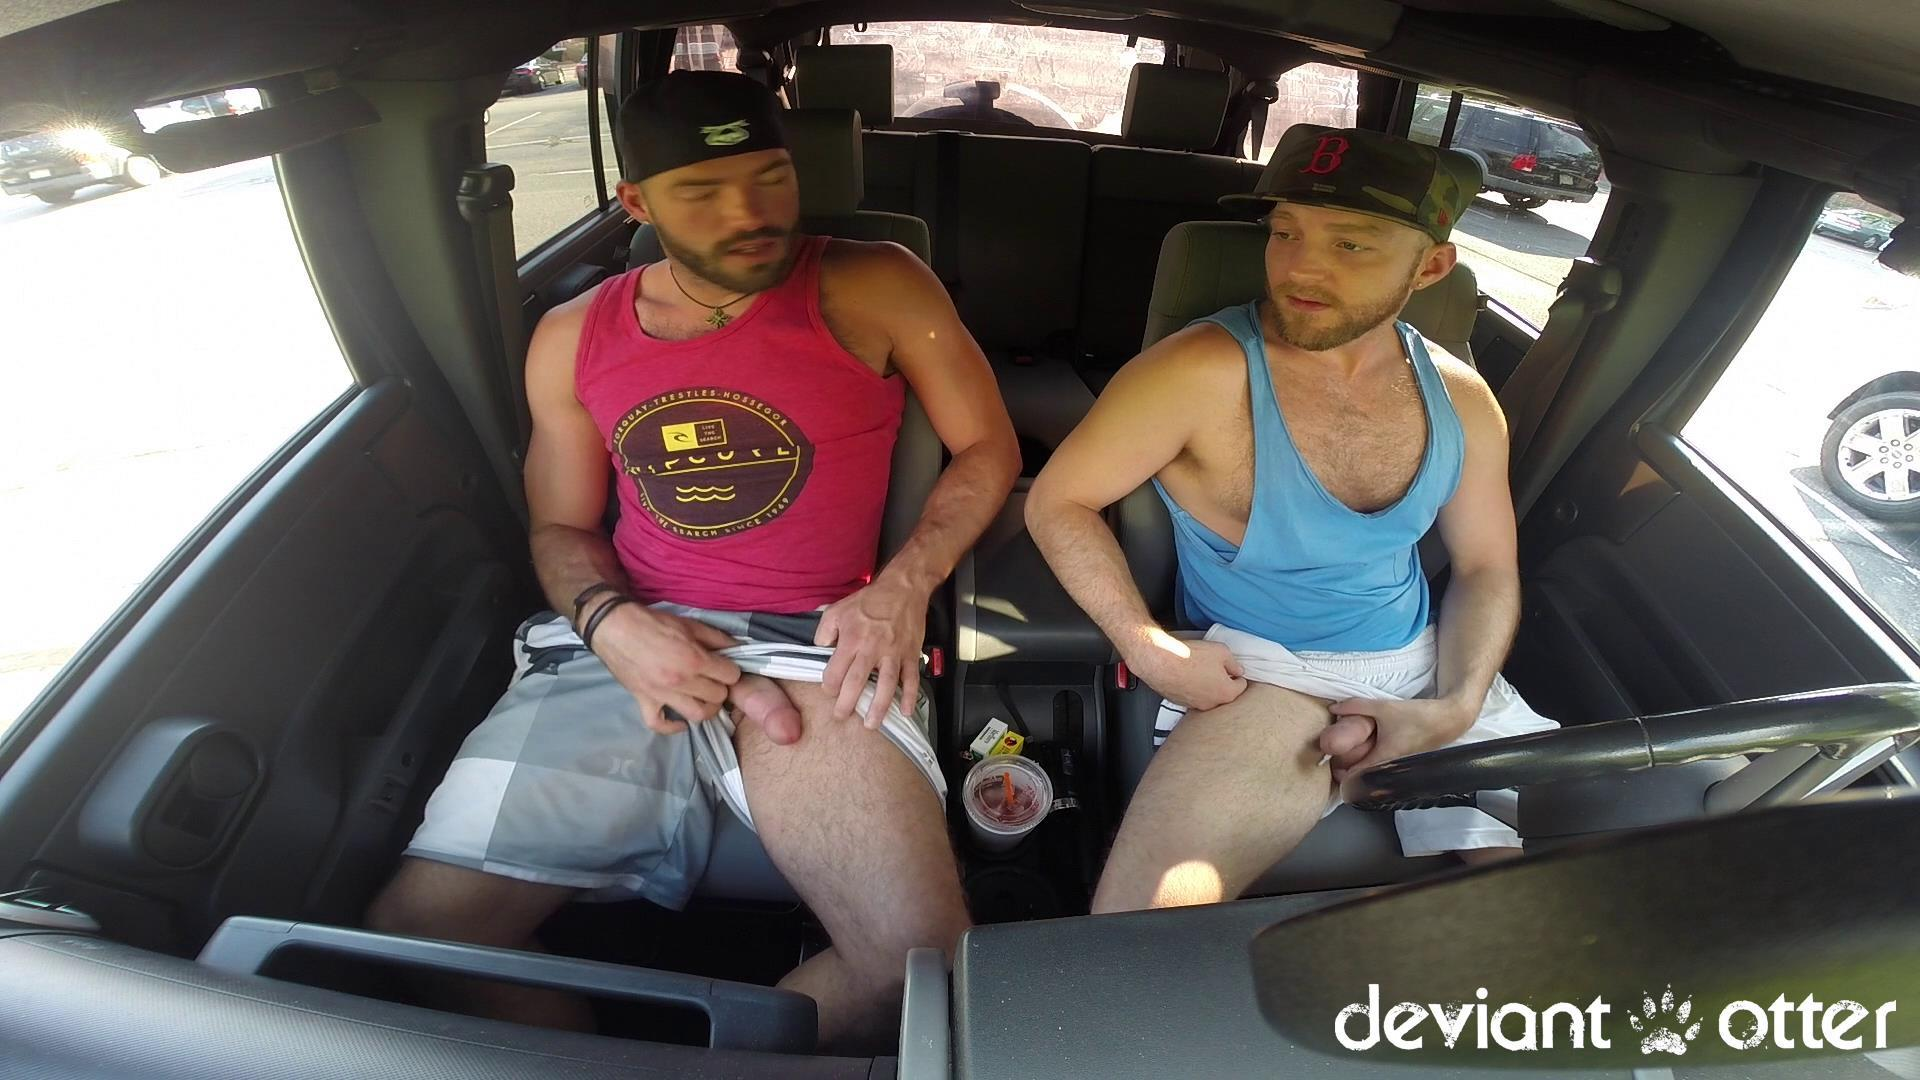 Deviant Otter Xavier Sucking Cock In Public Hairy Guys Amateur Gay Porn 02 Masculine Hairy Guys Sucking Each Others Cock In A Parking Lot